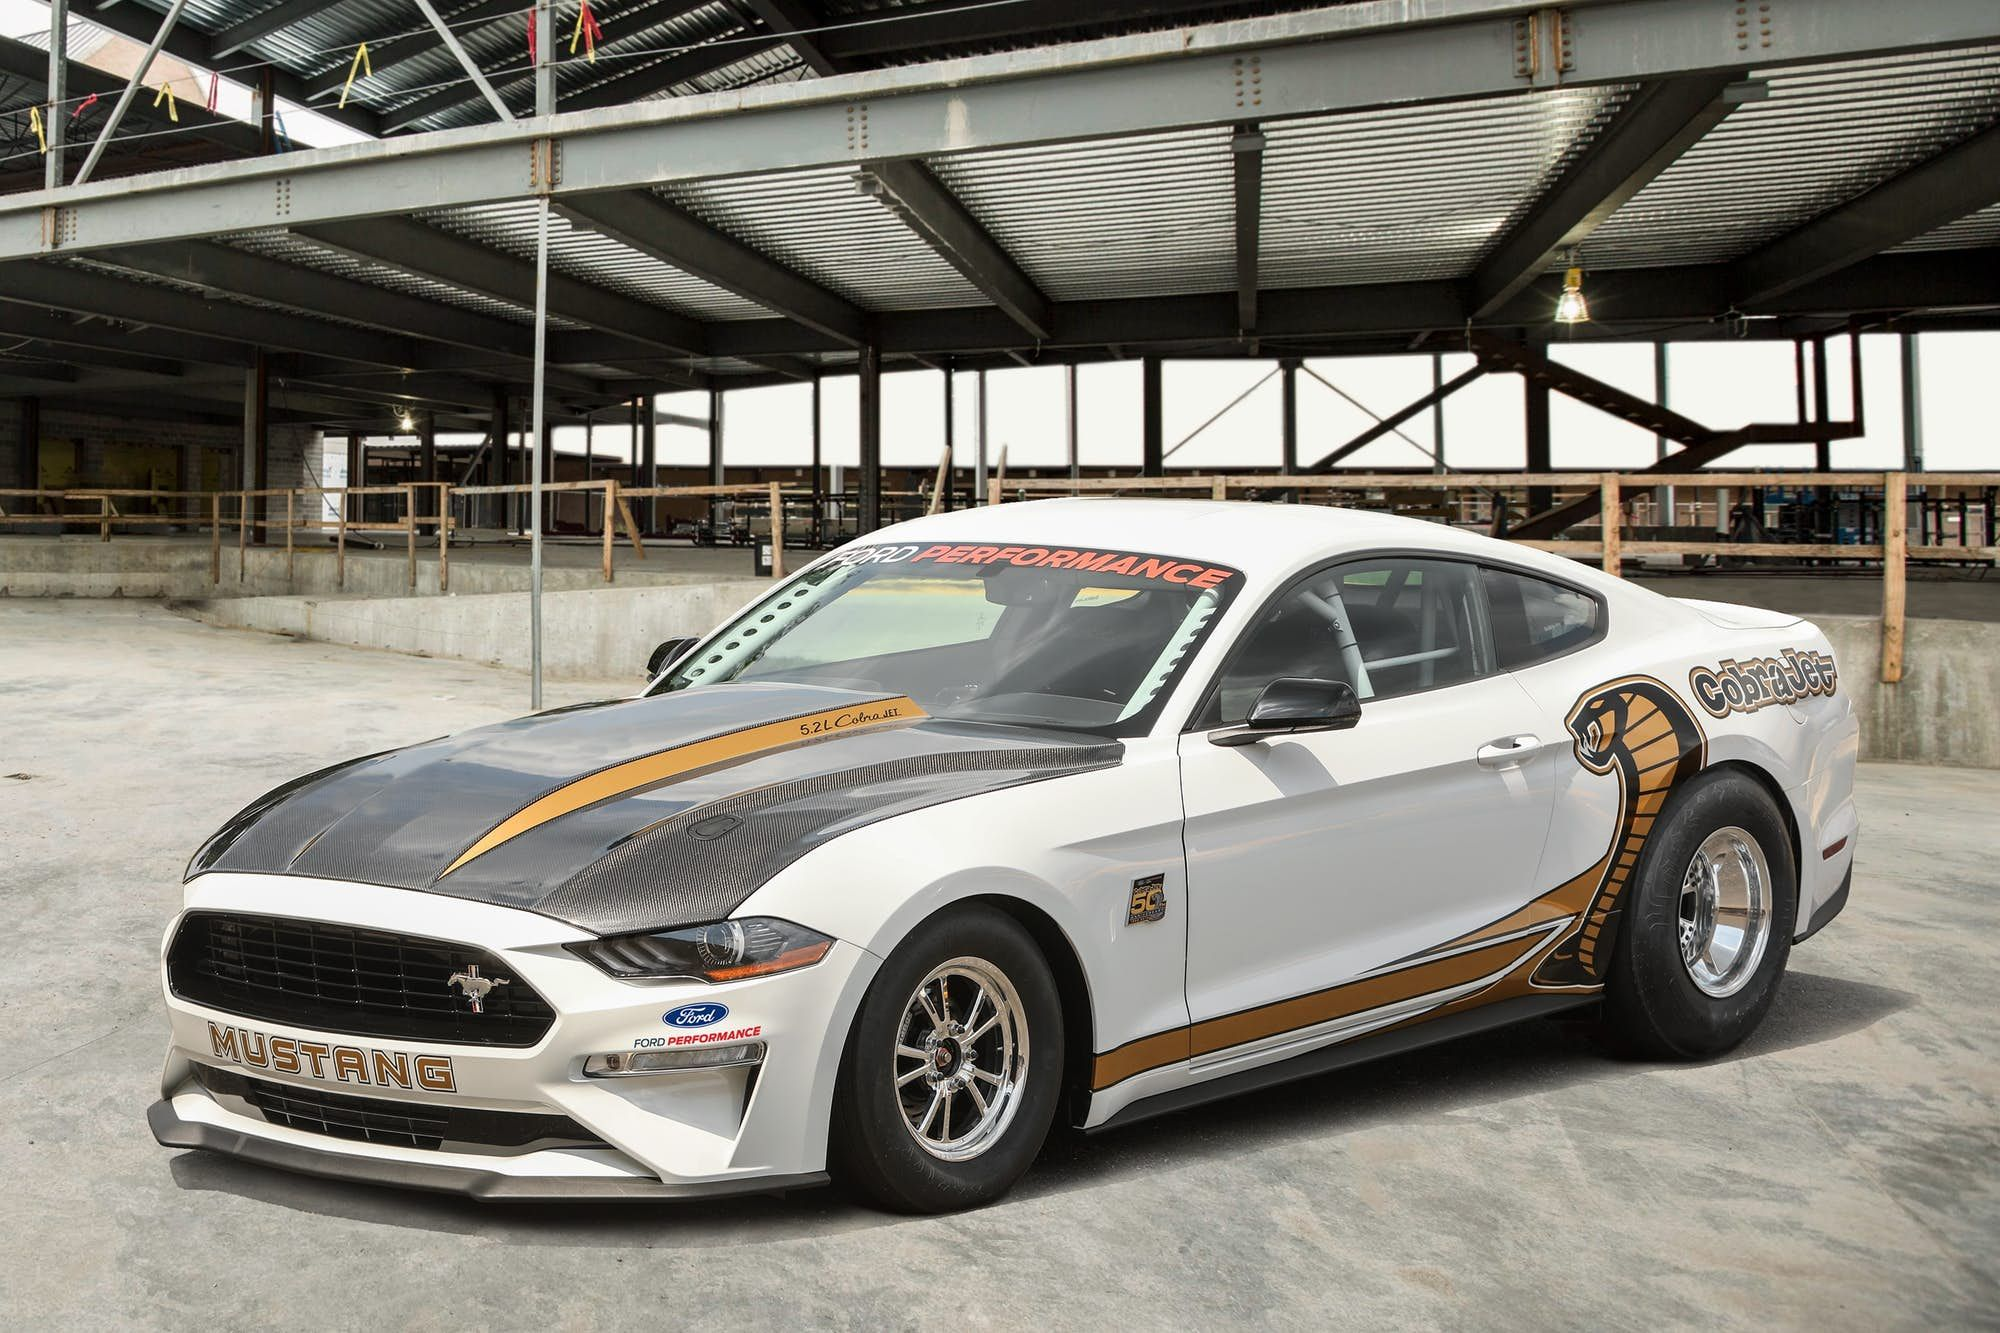 Ford Heats Up The Track With New Mustang Cobra Jet Mustang Cobra Mustang Cobra Jet Ford Mustang Cobra